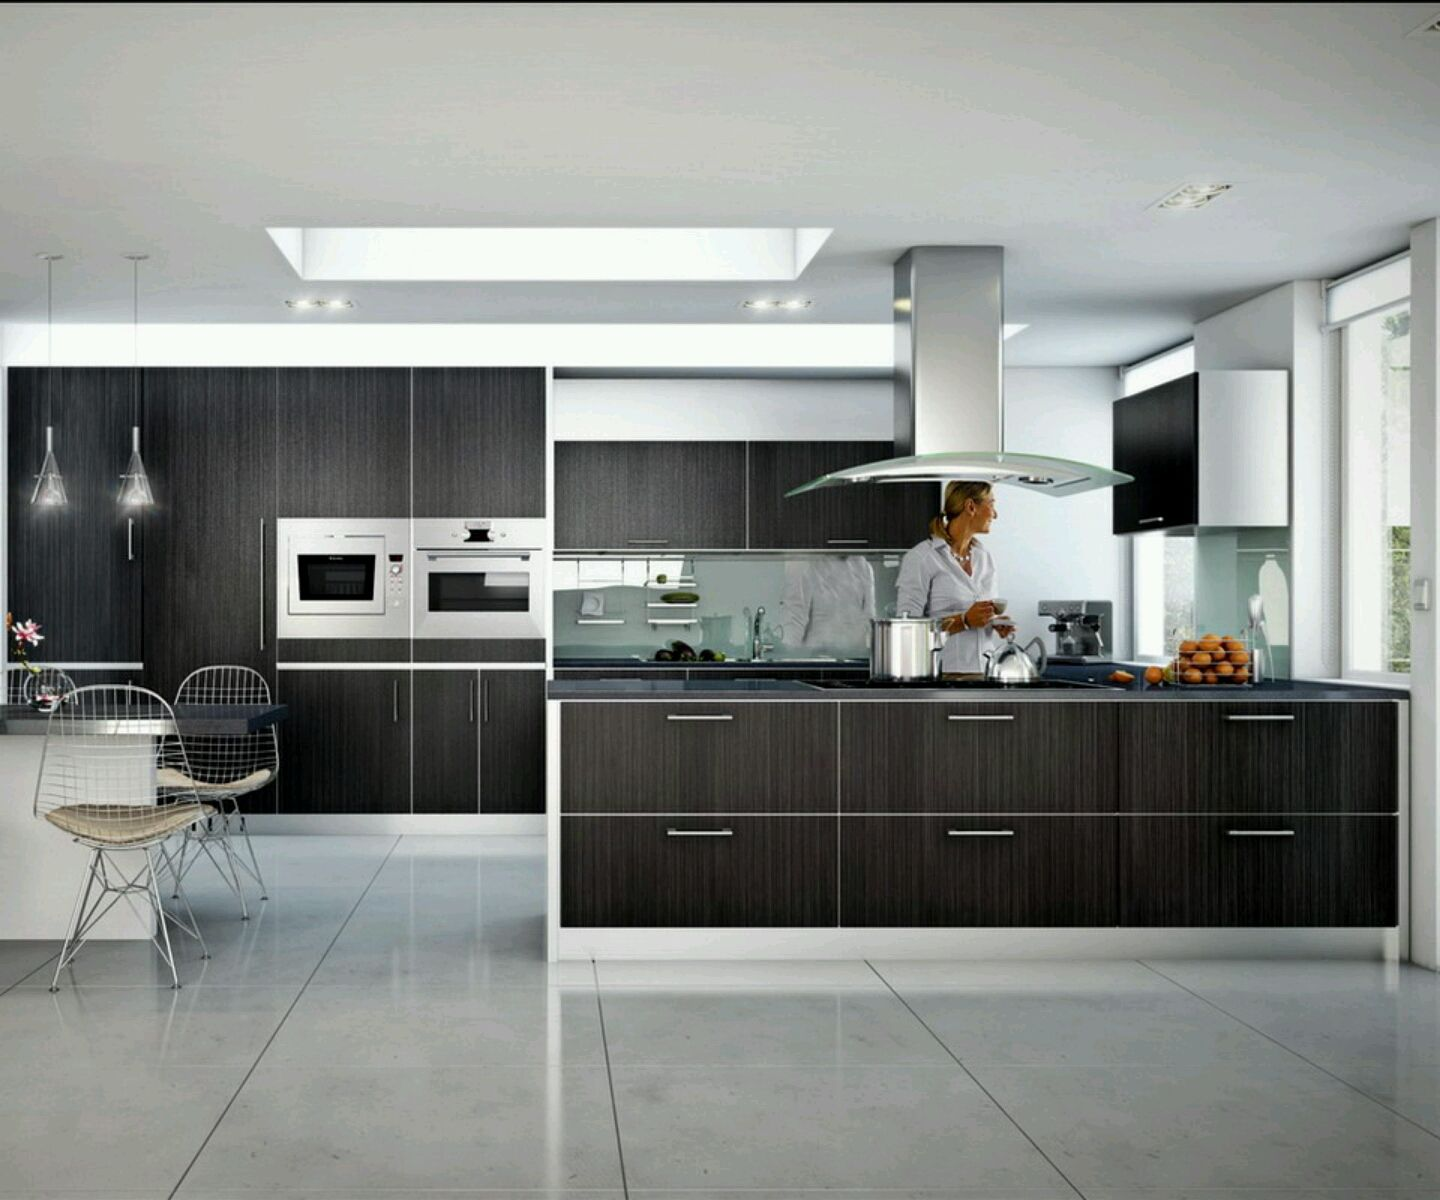 New Home Designs Latest Ultra Modern Kitchen Designs Ideas: New Home Designs Latest Modern Homes Ultra Modern Perfect